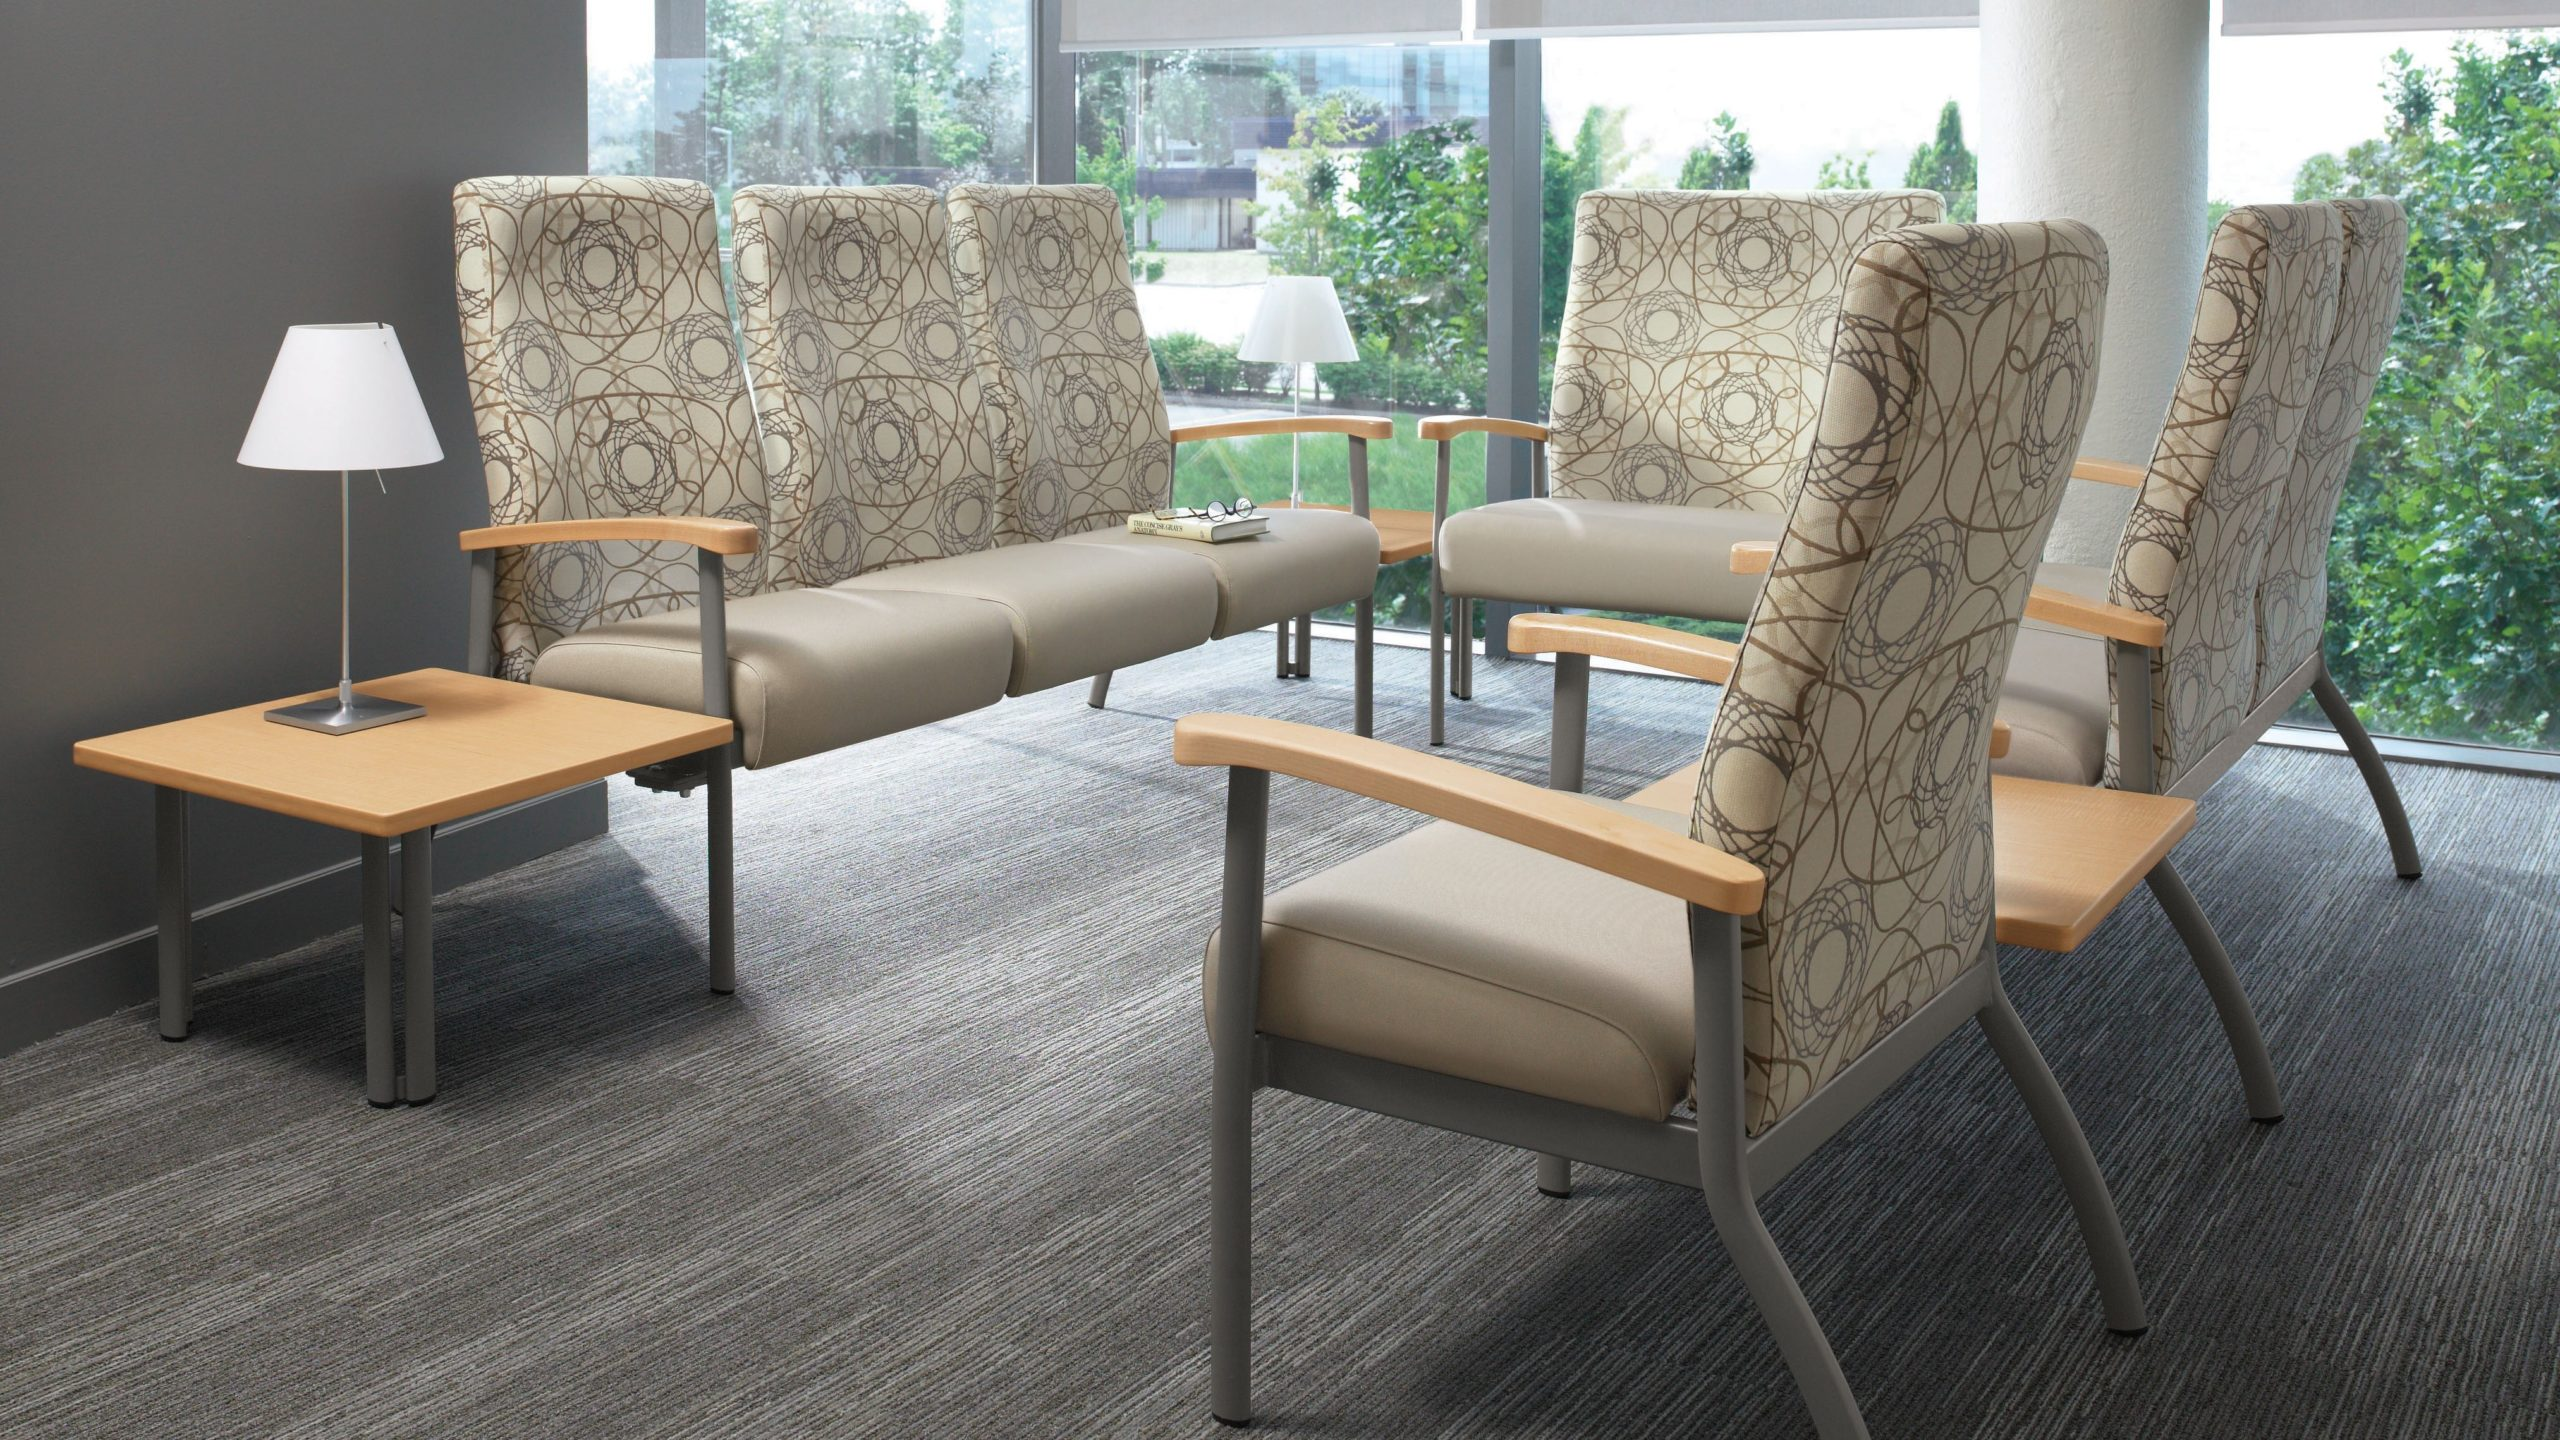 GC Belong chair with contoured back.